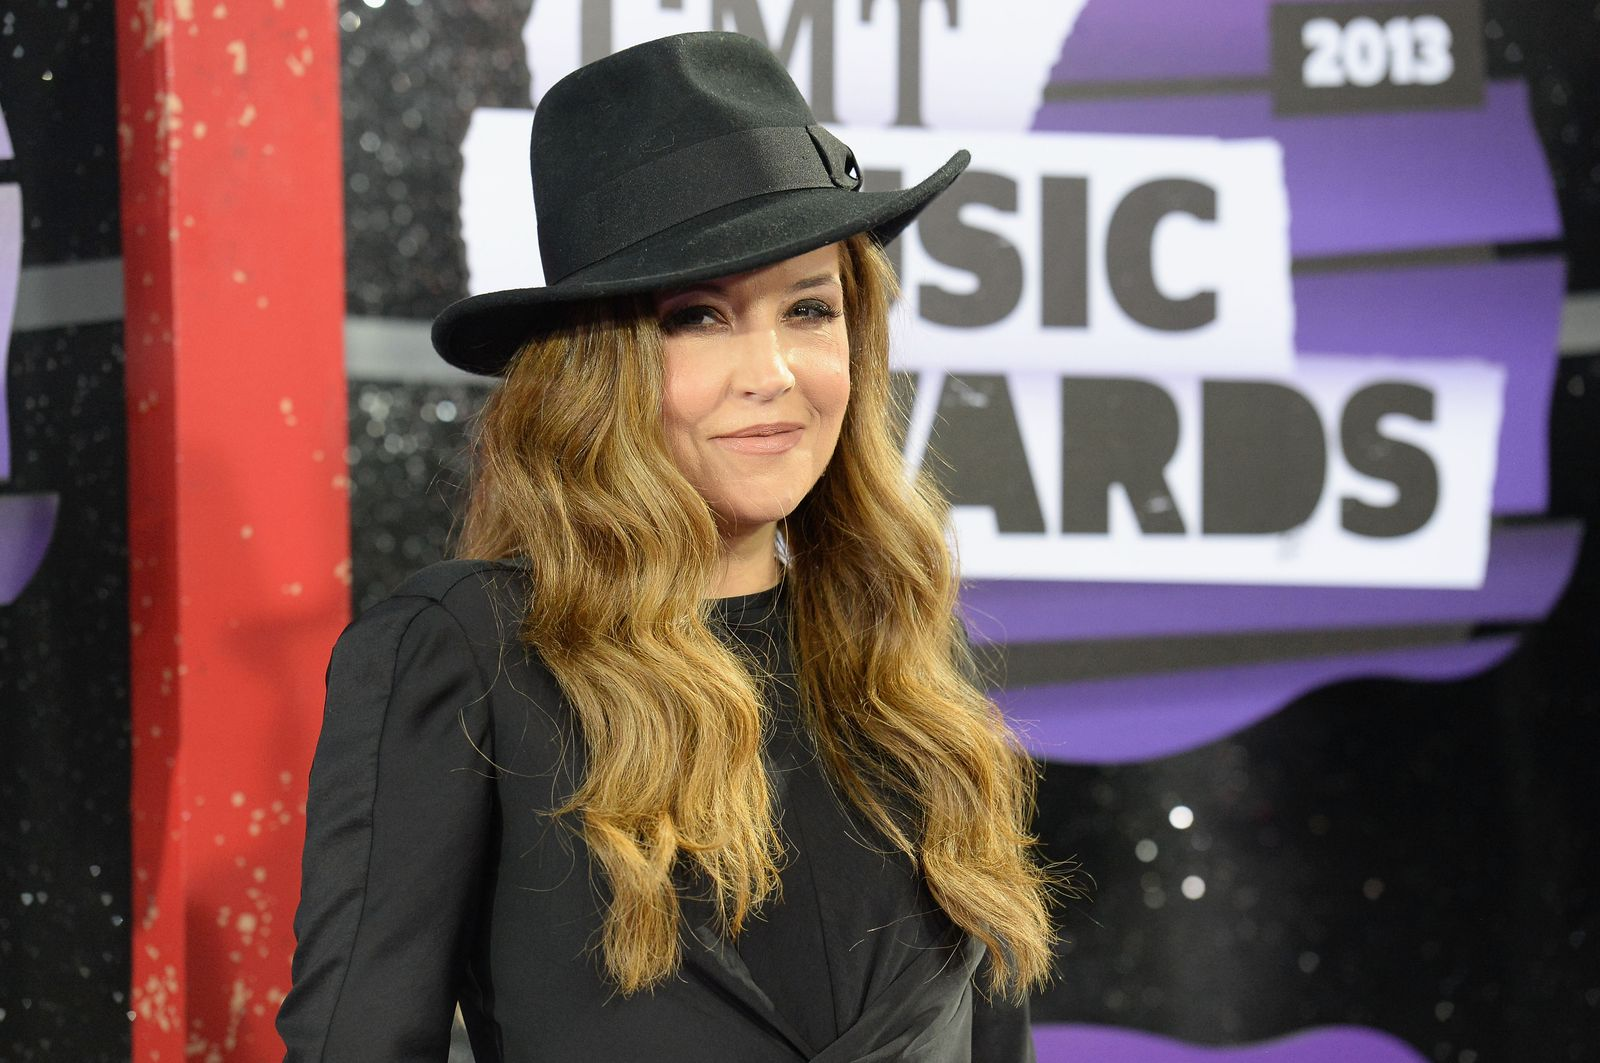 Lisa Marie Presley at the CMT Music Awards at the Bridgestone Arena on June 5, 2013, in Nashville, Tennessee | Photo: Jason Merritt/Getty Images